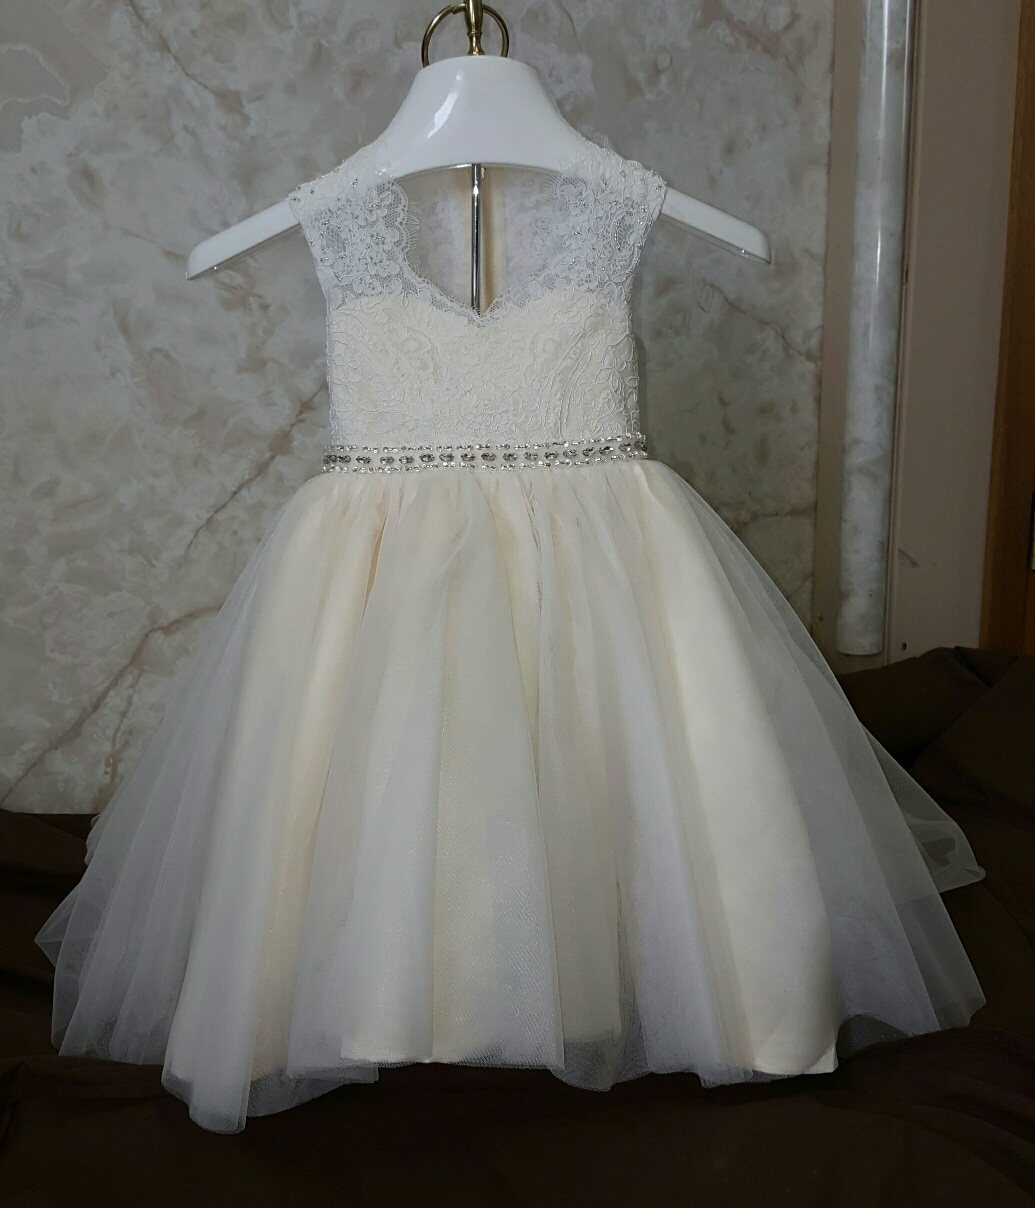 Lace baby wedding dress size 12 months for 12 month dresses for wedding